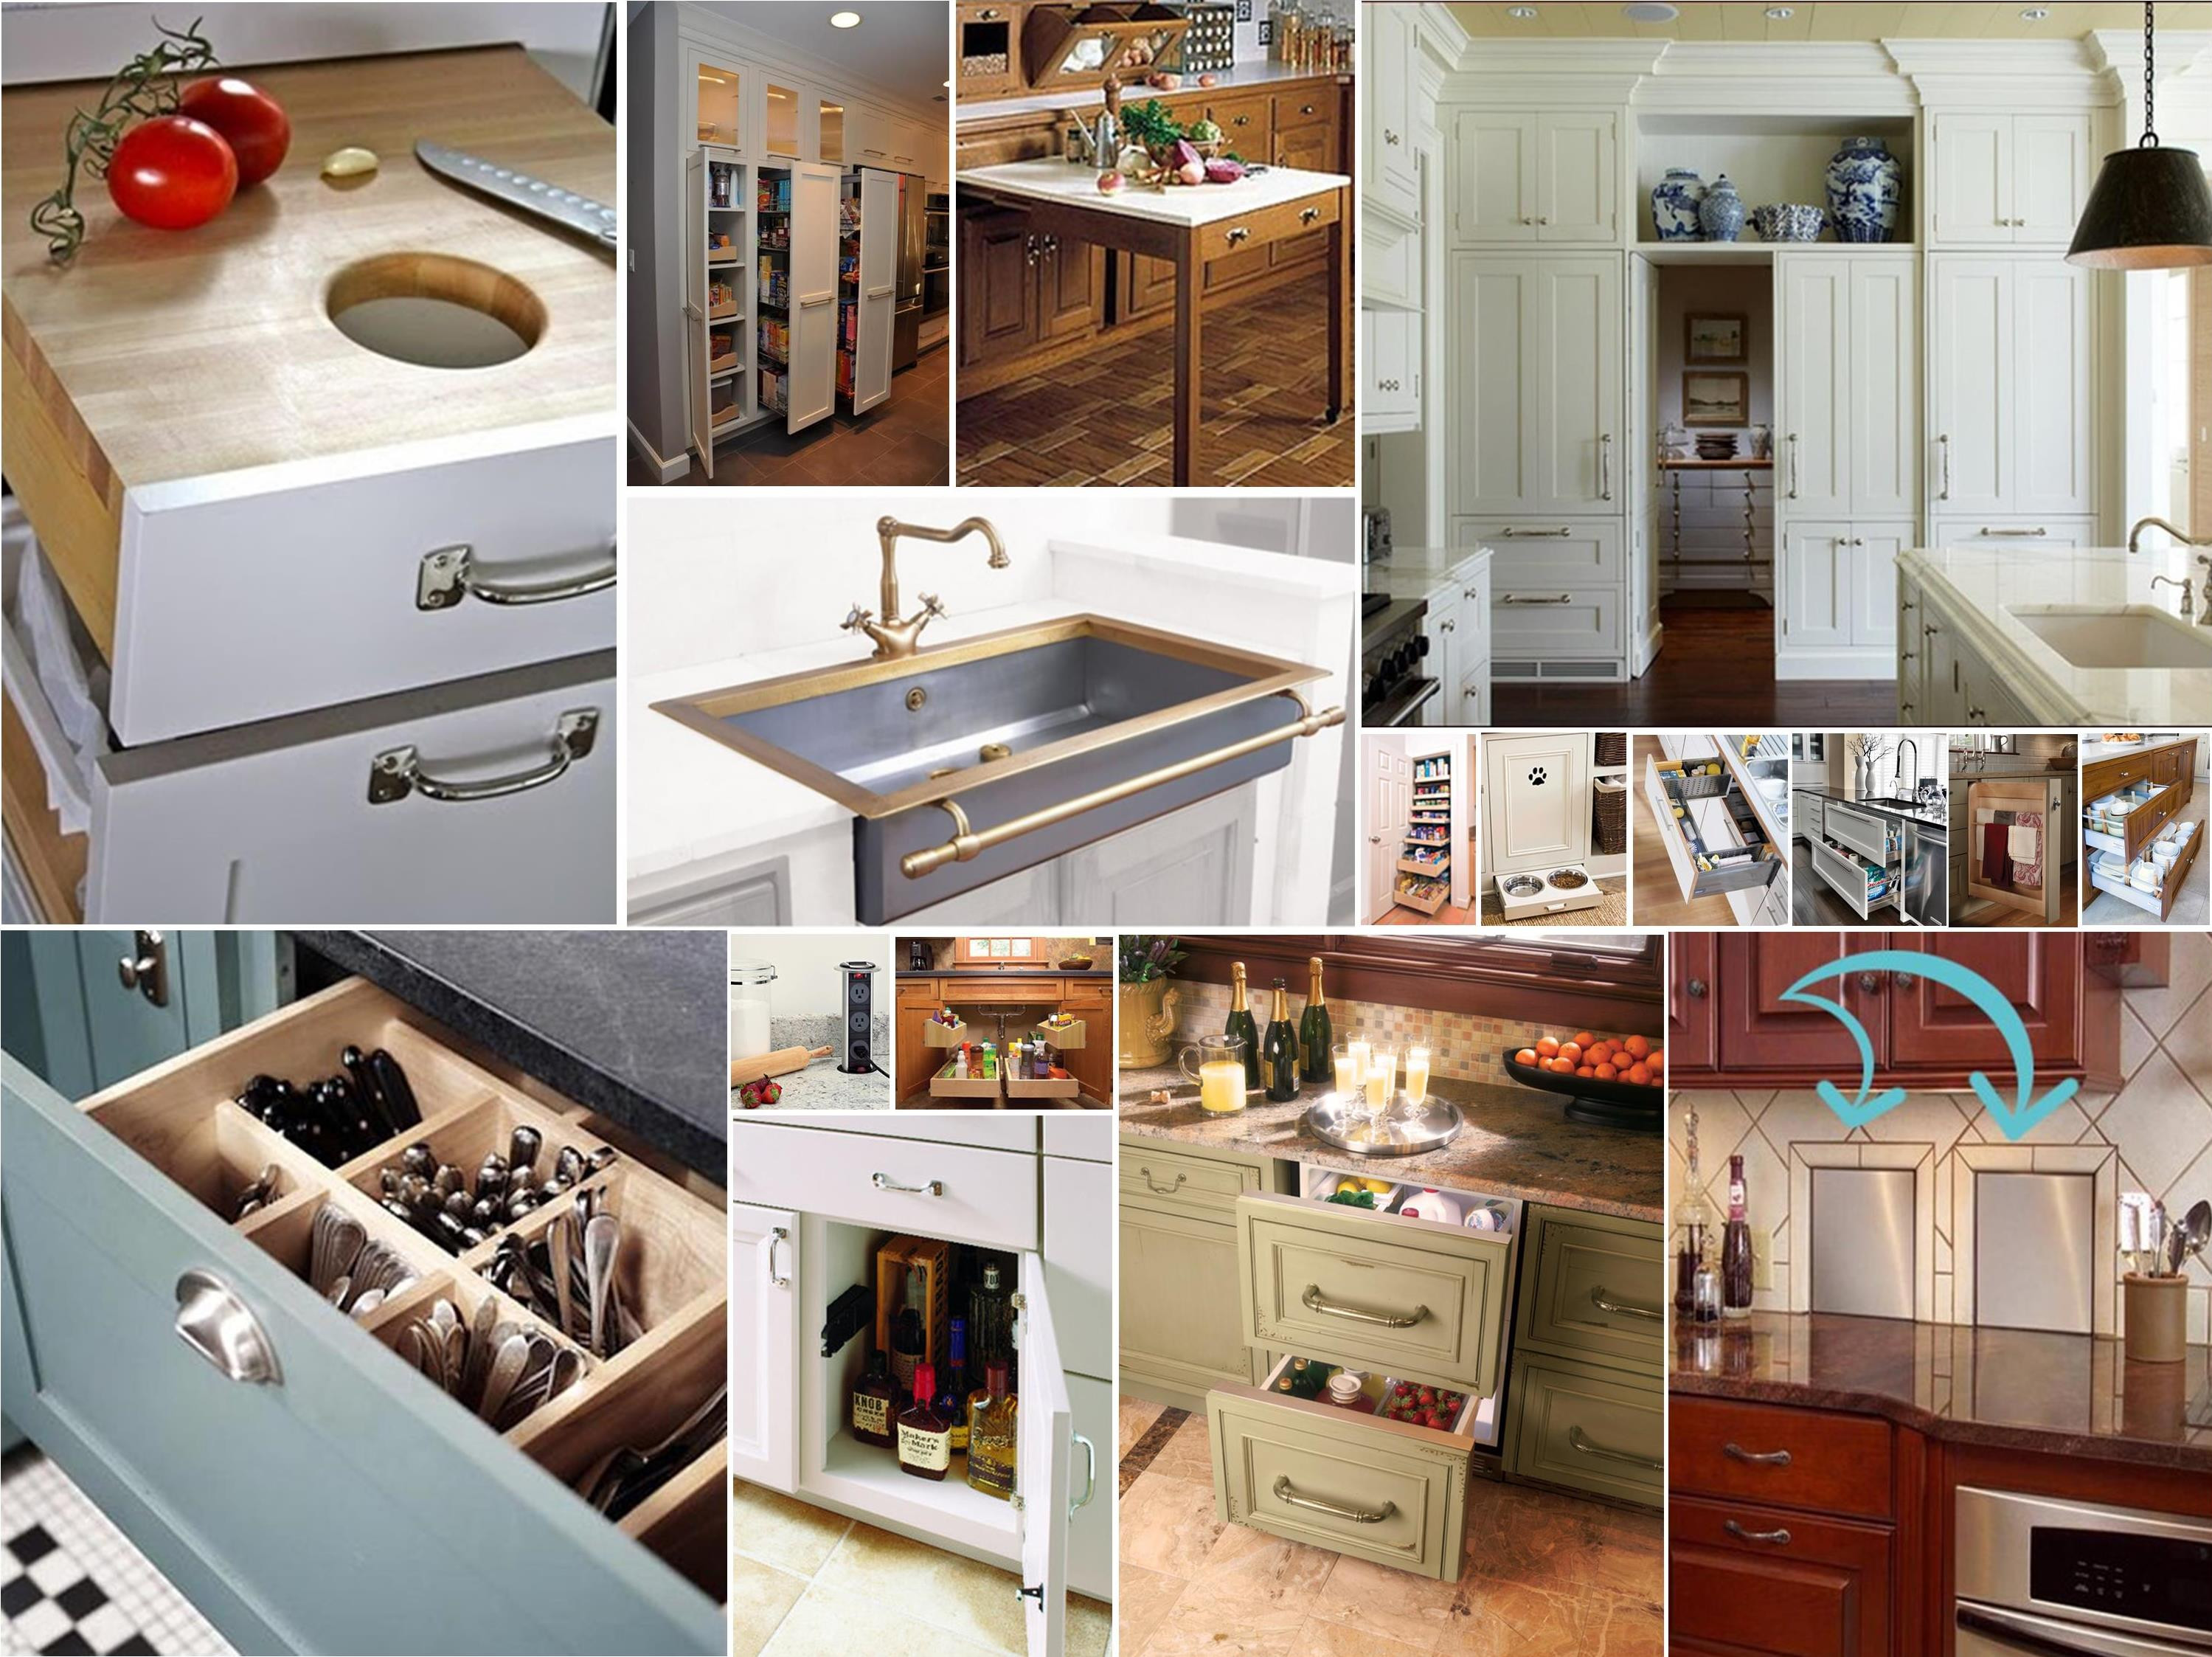 Best ideas about Clever Kitchen Ideas . Save or Pin Here Some Other Clever Kitchen Ideas Should Think DMA Now.